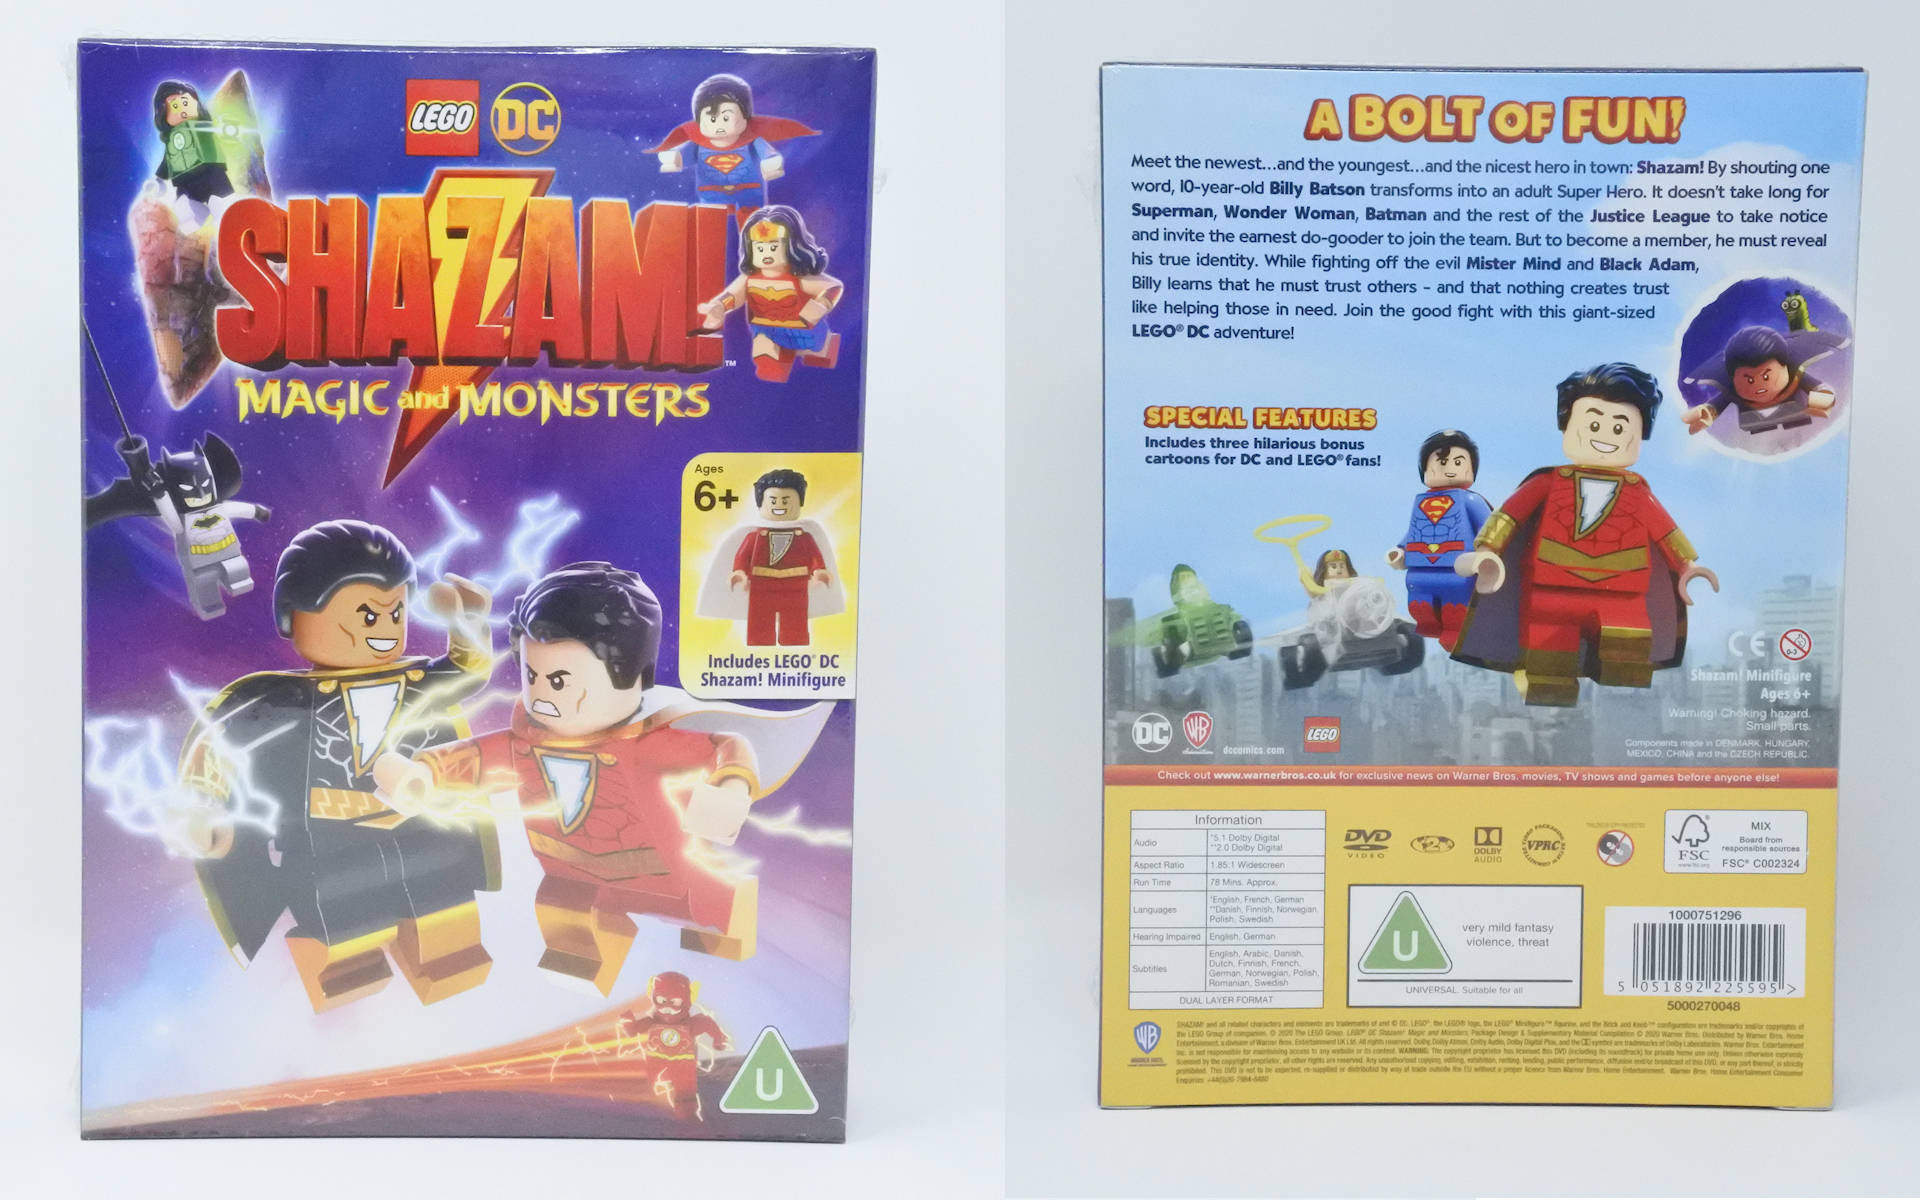 LEGO DC Shazam - Magic and Monsters DVD